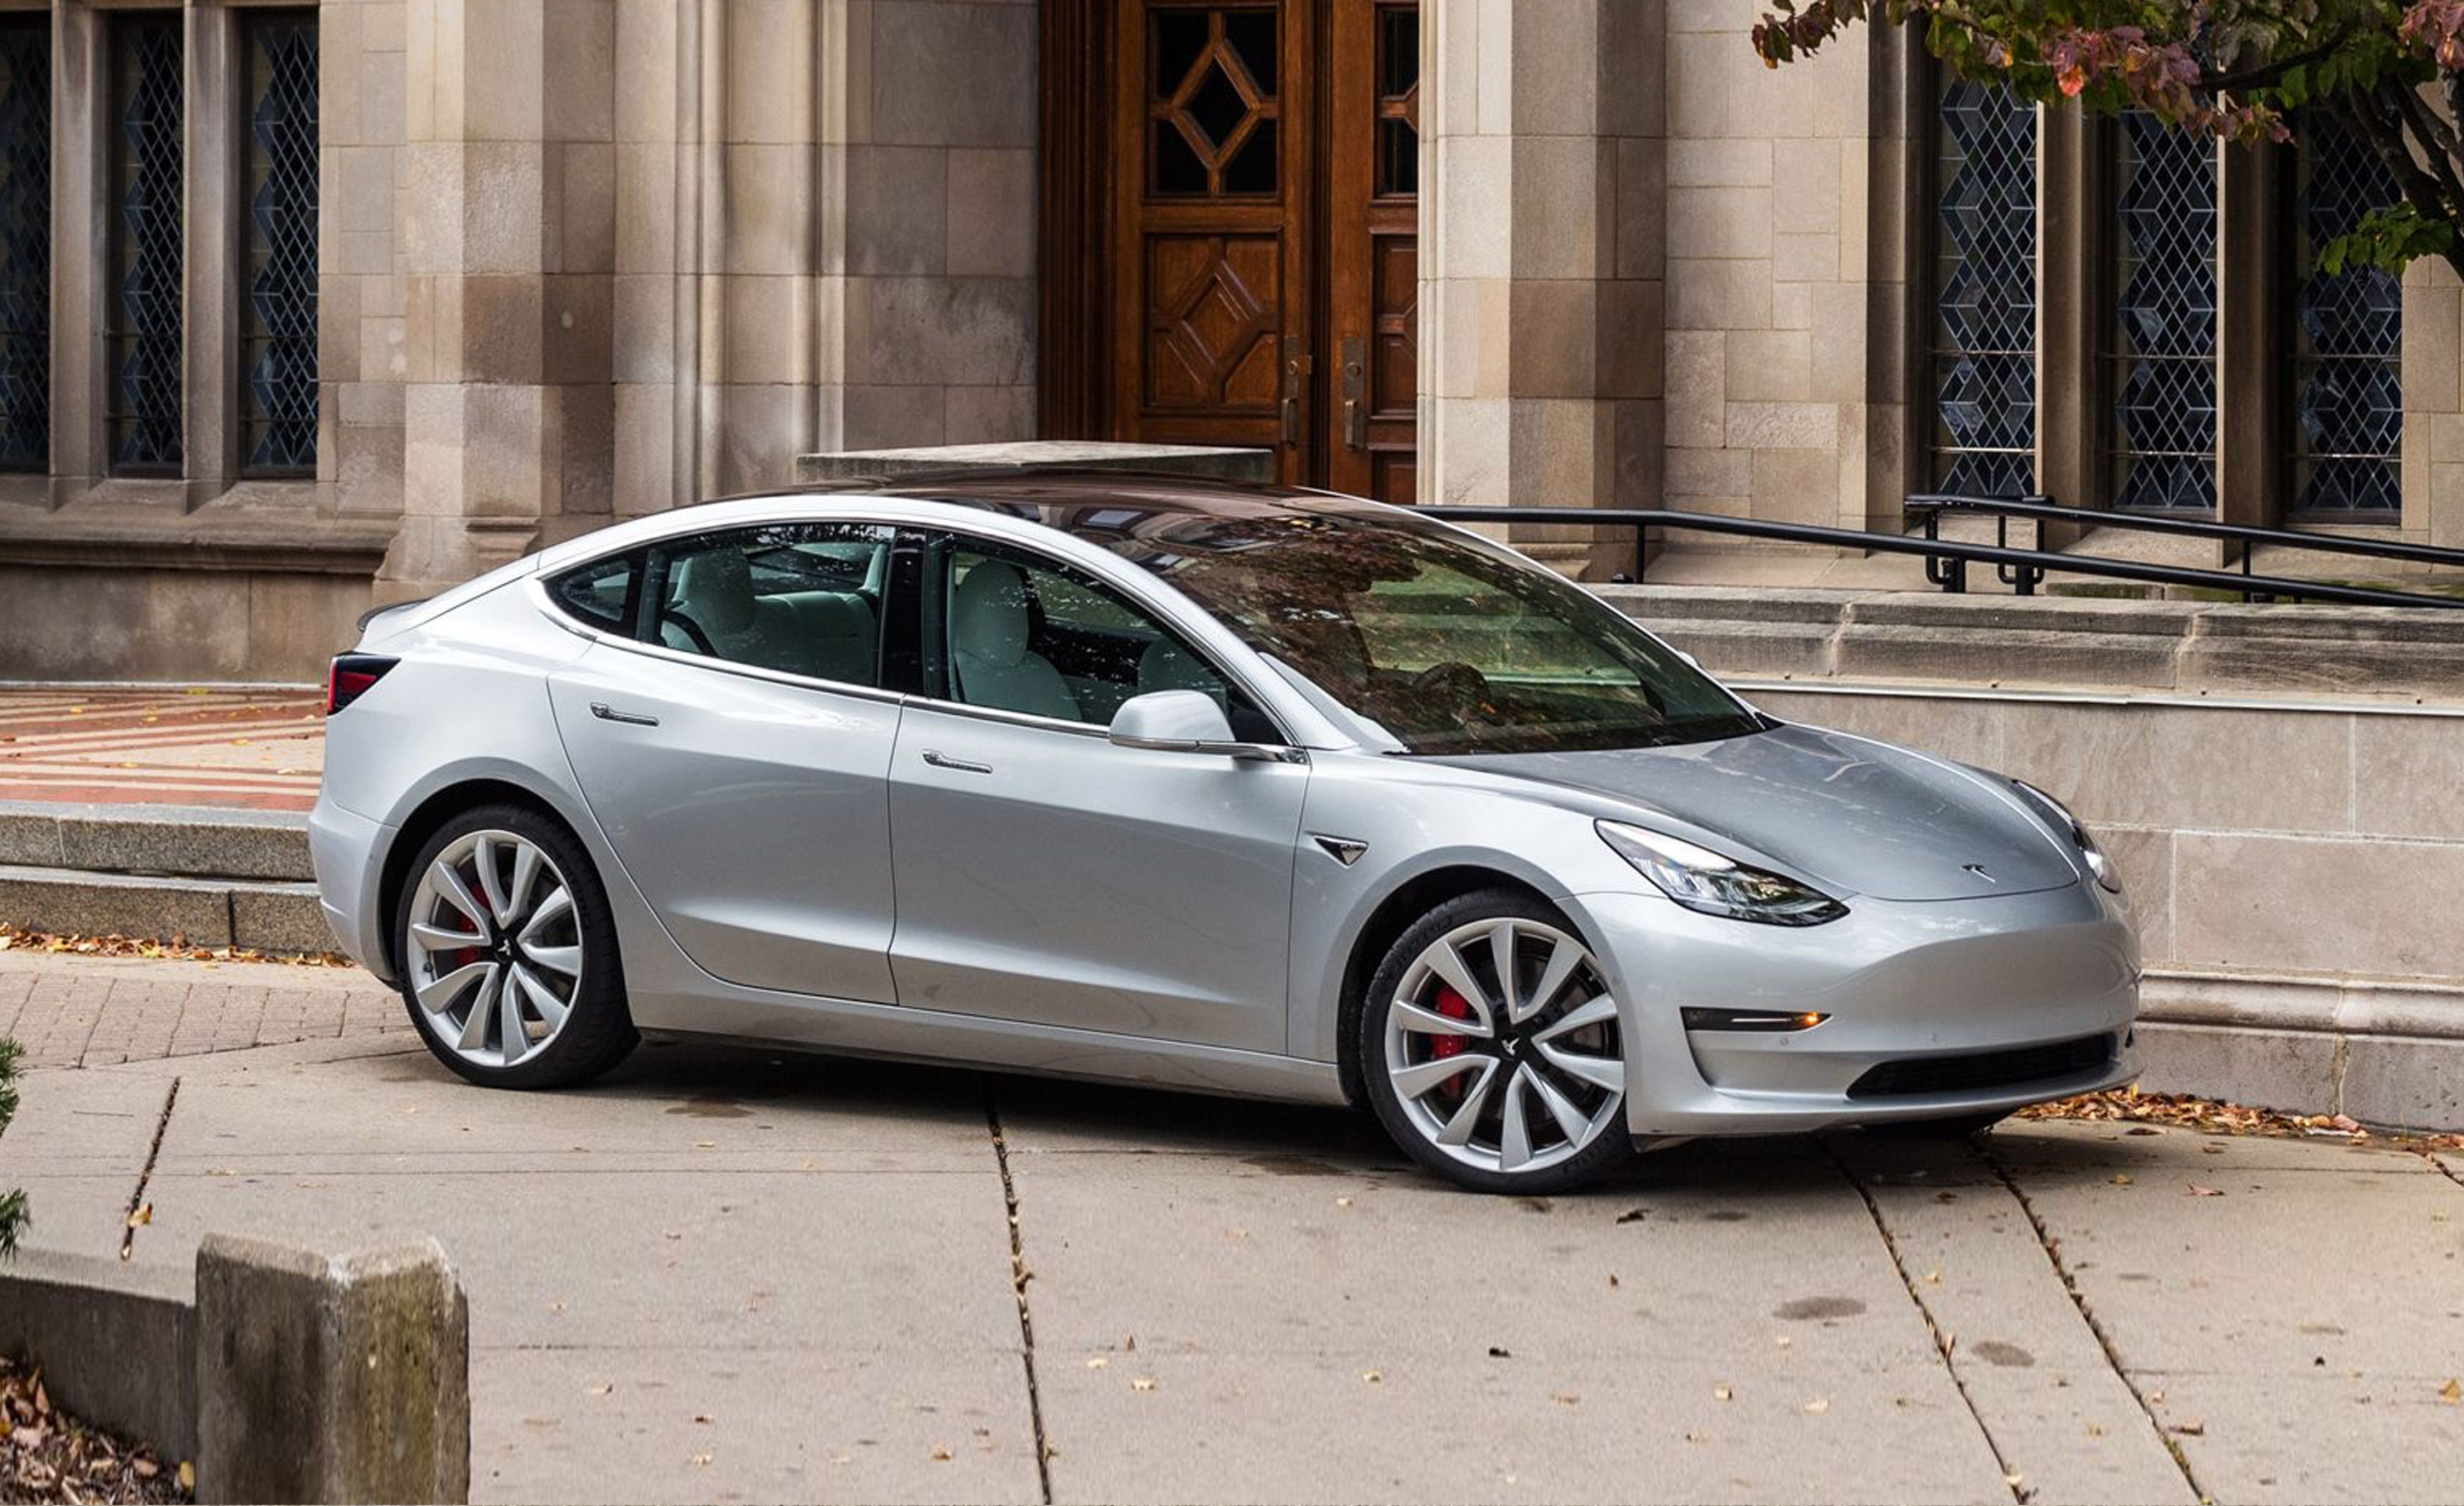 12. Tesla Model 3 It's hard to think of a new car more attention-grabbing in this segment than the Tesla Model 3 . Besides its Tesla glow, the Model 3 offers an enviable combination of extremely quick acceleration and a super-minimalist yet techy interior.